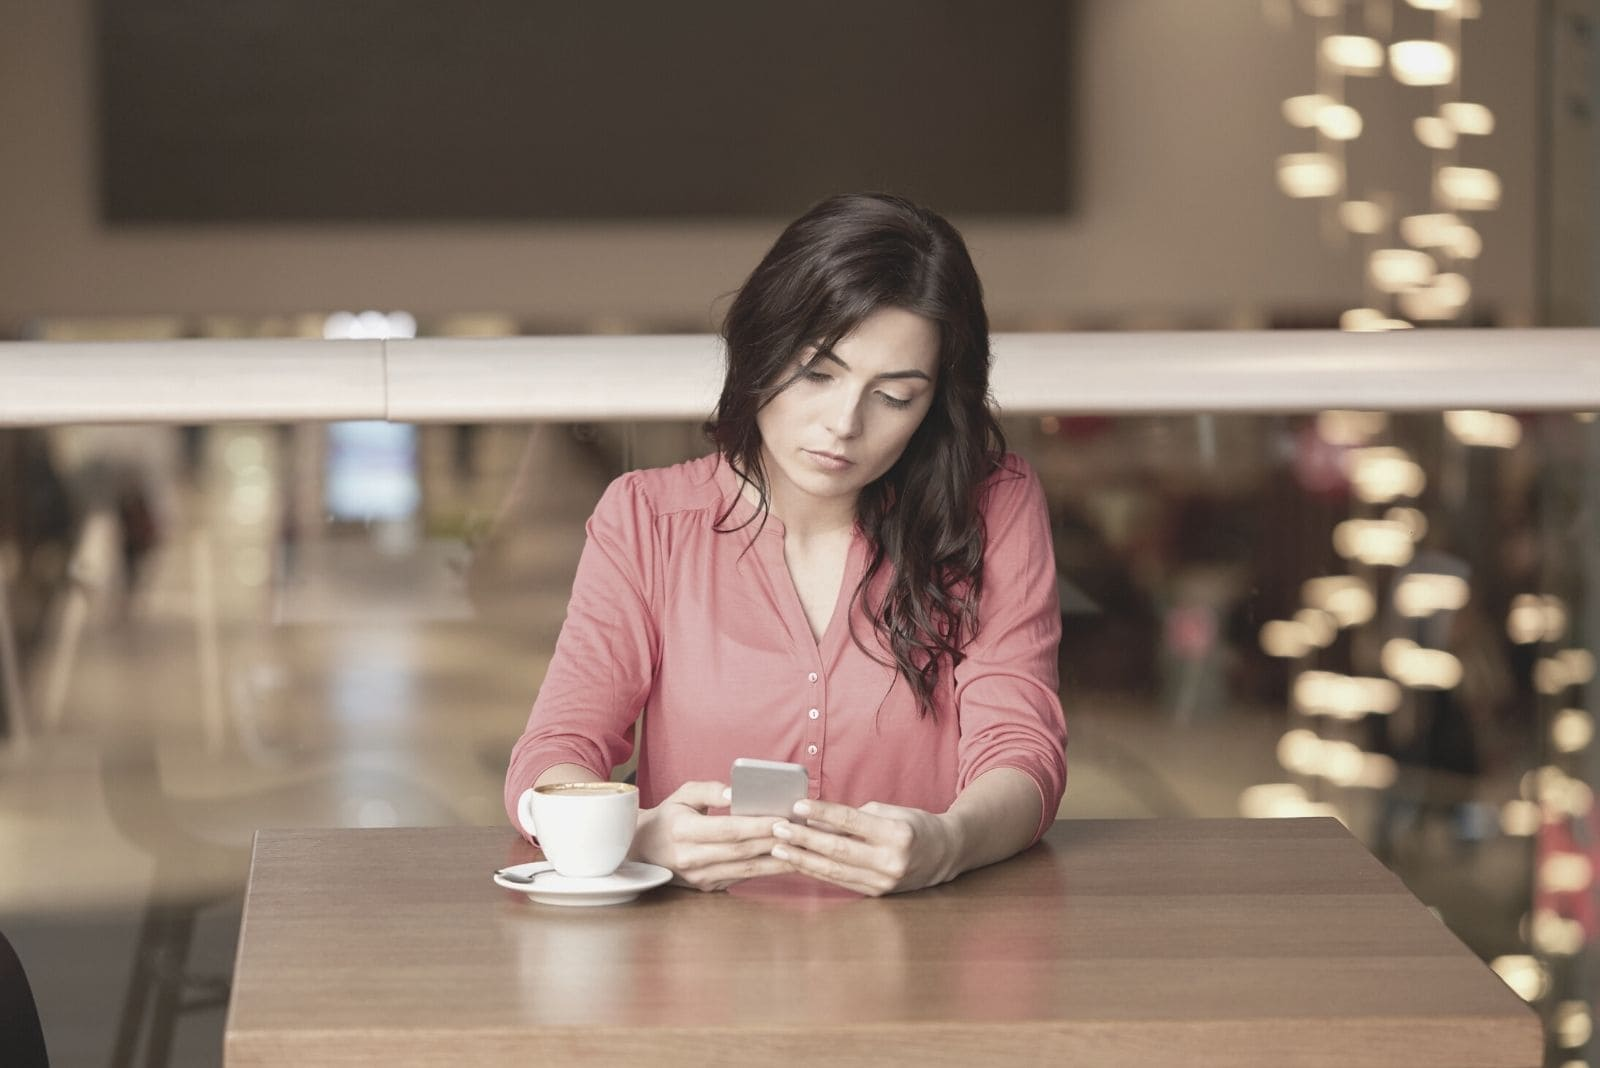 woman looking at the smartphone while having coffee at a cafe